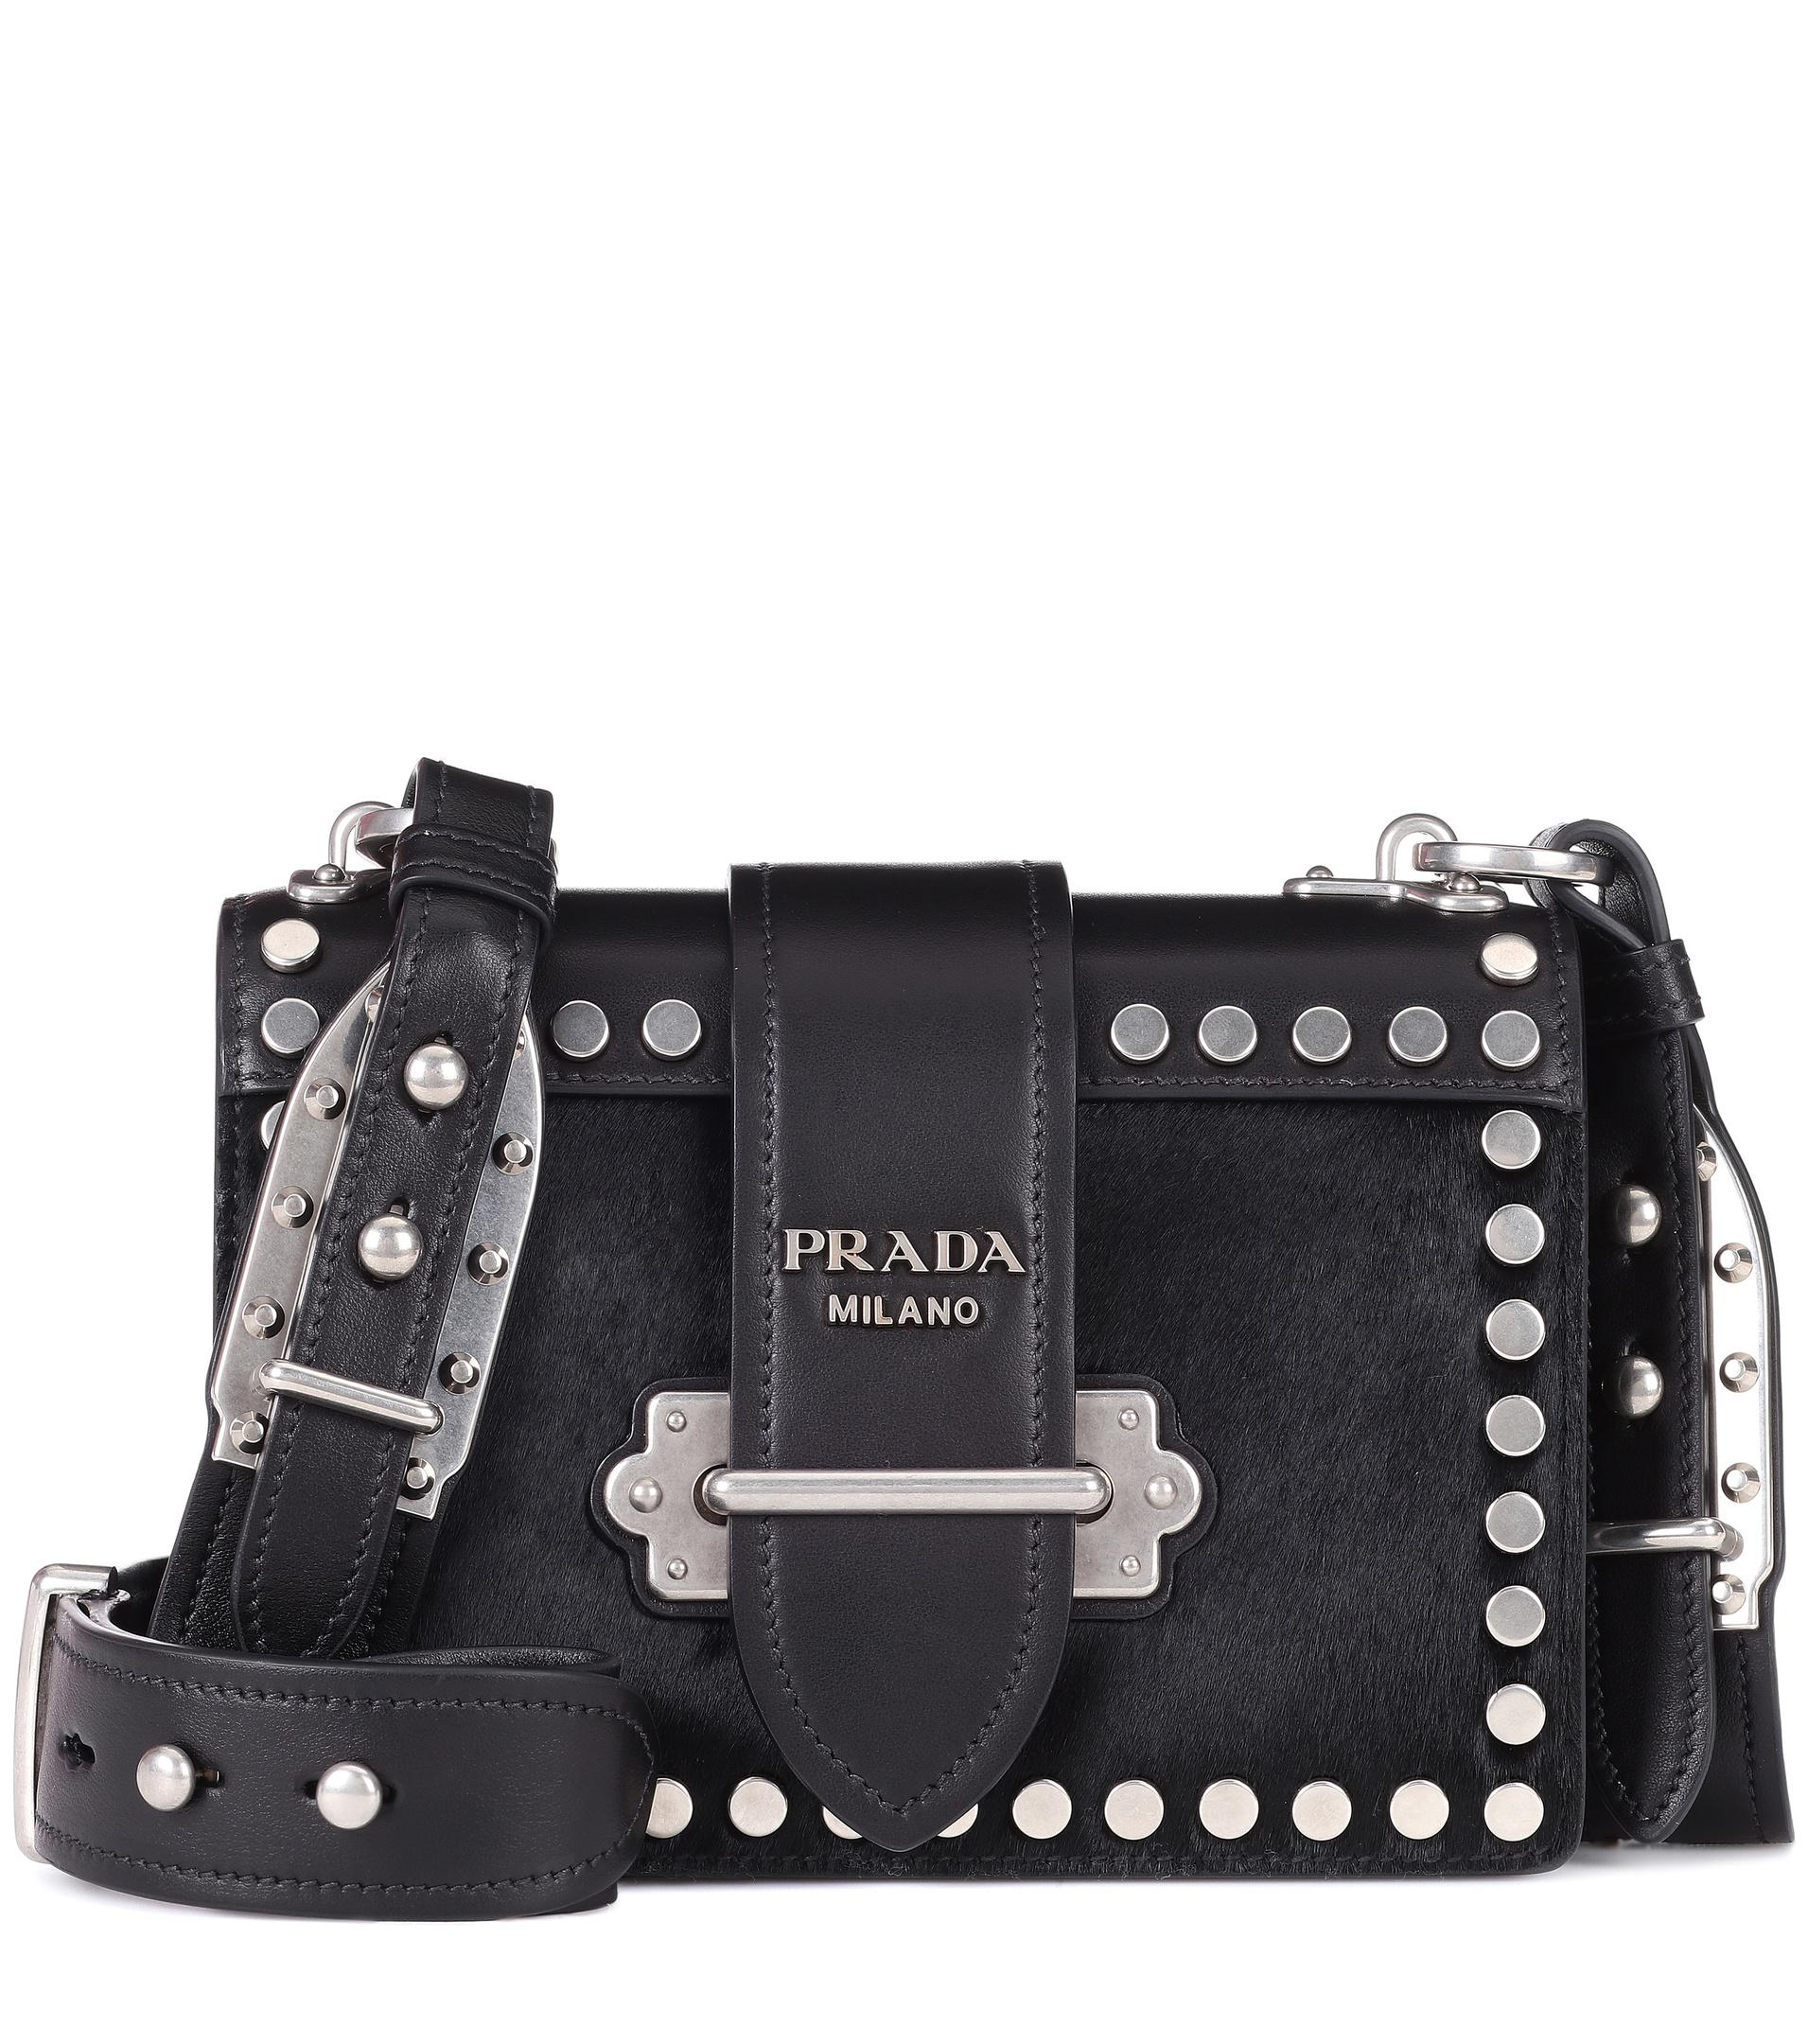 a96d619364251a Prada Cahier Bag Nordstrom | Stanford Center for Opportunity Policy ...